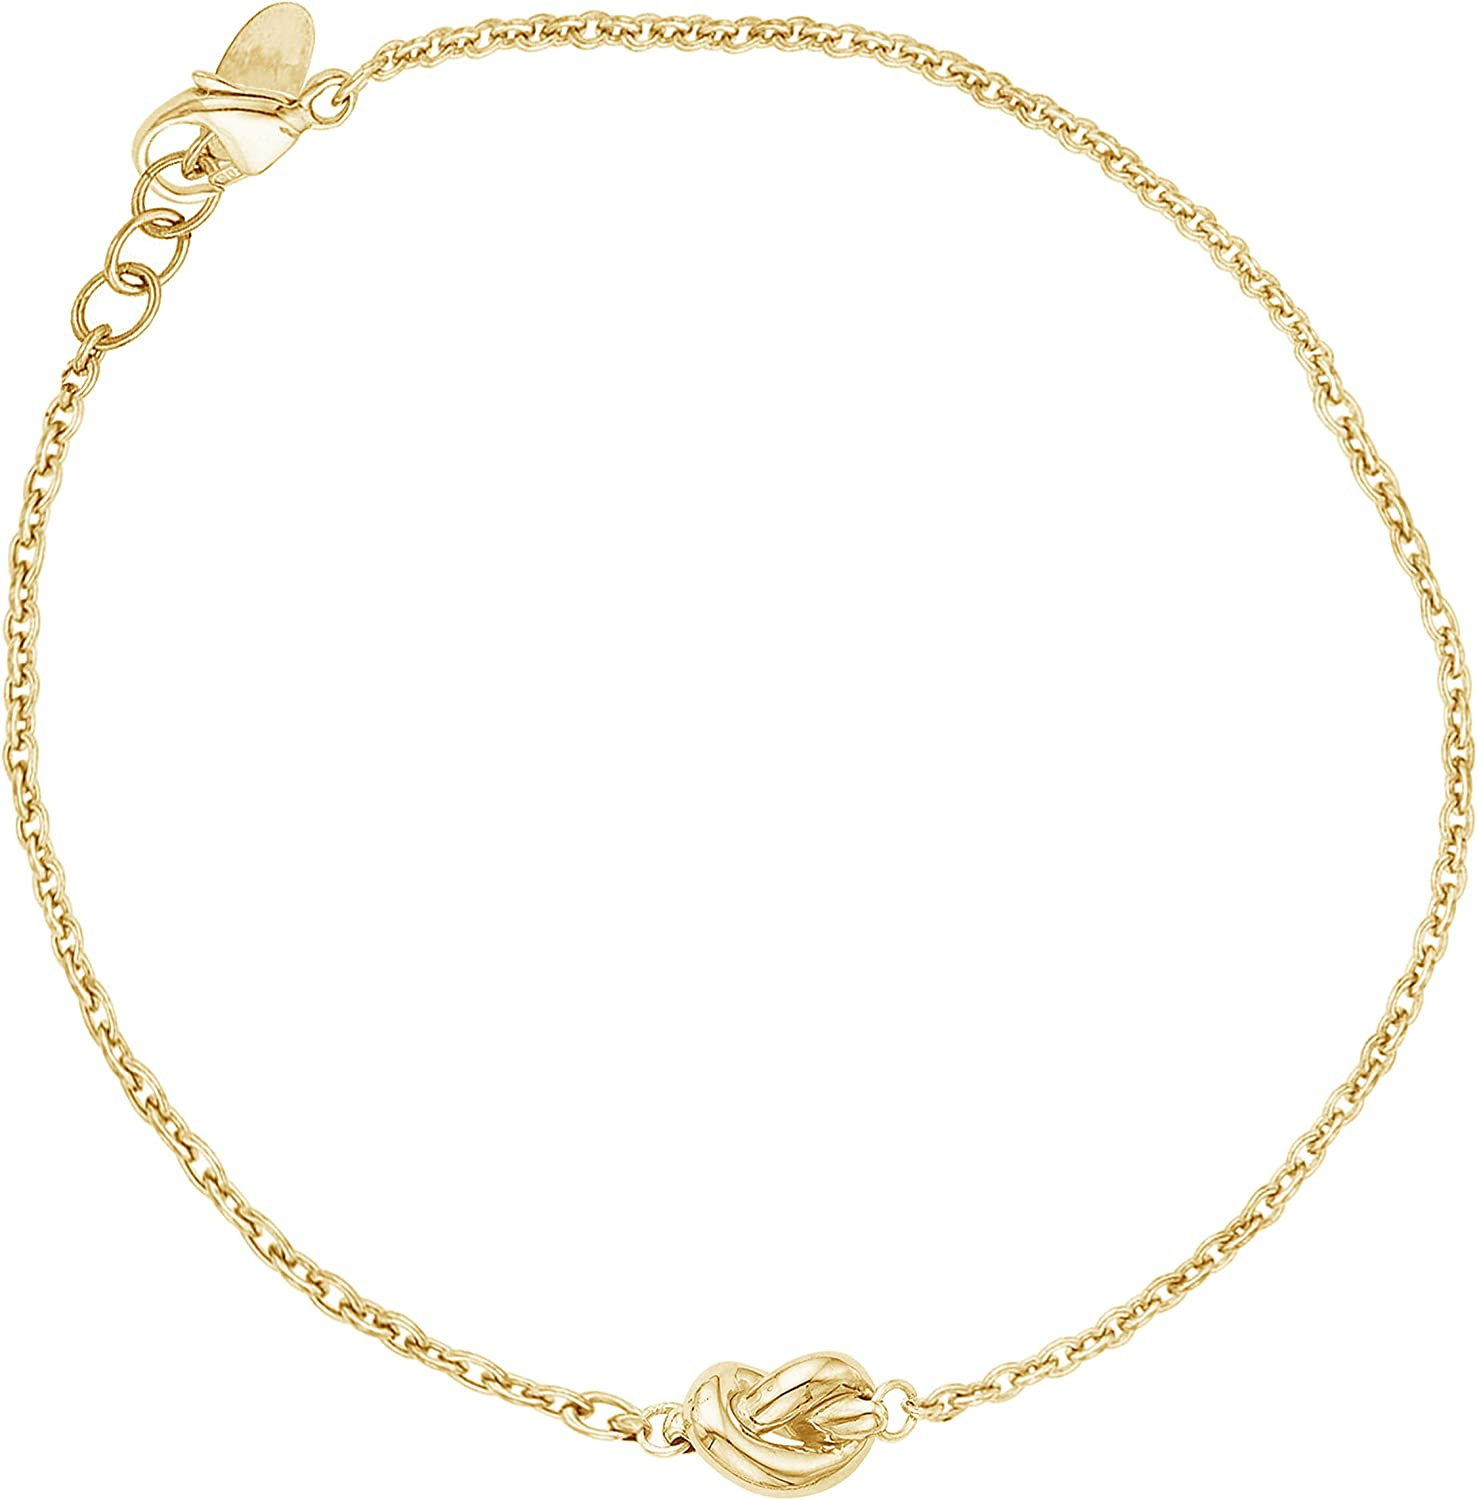 14k Yellow, White, or Rose Pink Gold Small Endless Love Amore Knot Charm Chain Bracelet 7